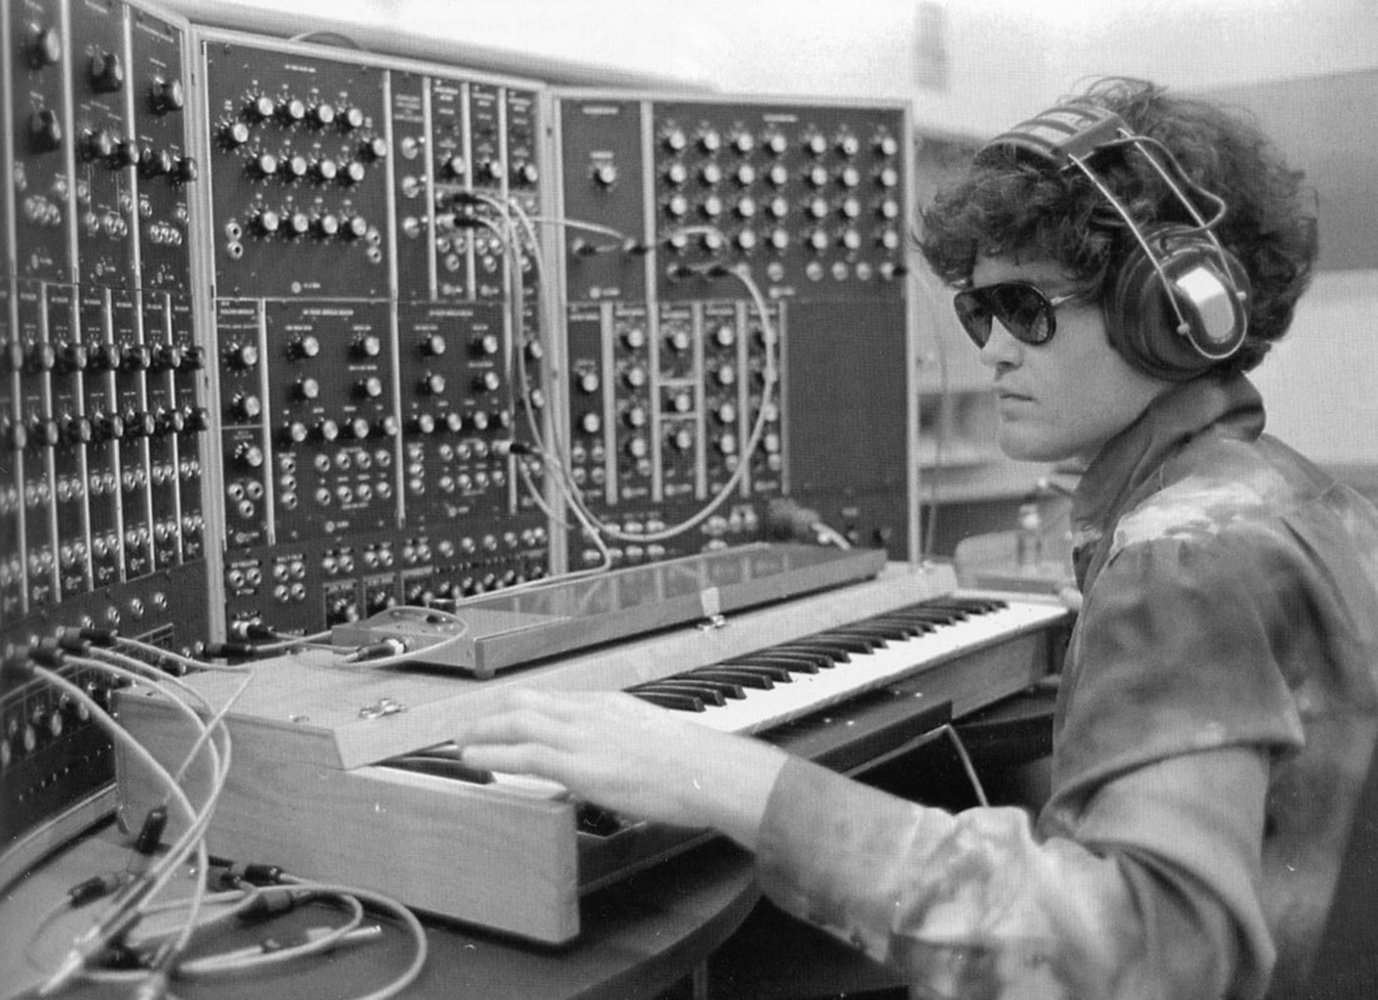 #OnThisDay in 1967, the first Moog Synthesizer IIIp was shipped to Micky Dolenz of @TheMonkees 🎛🎛🎛 https://t.co/Klx816z8K4